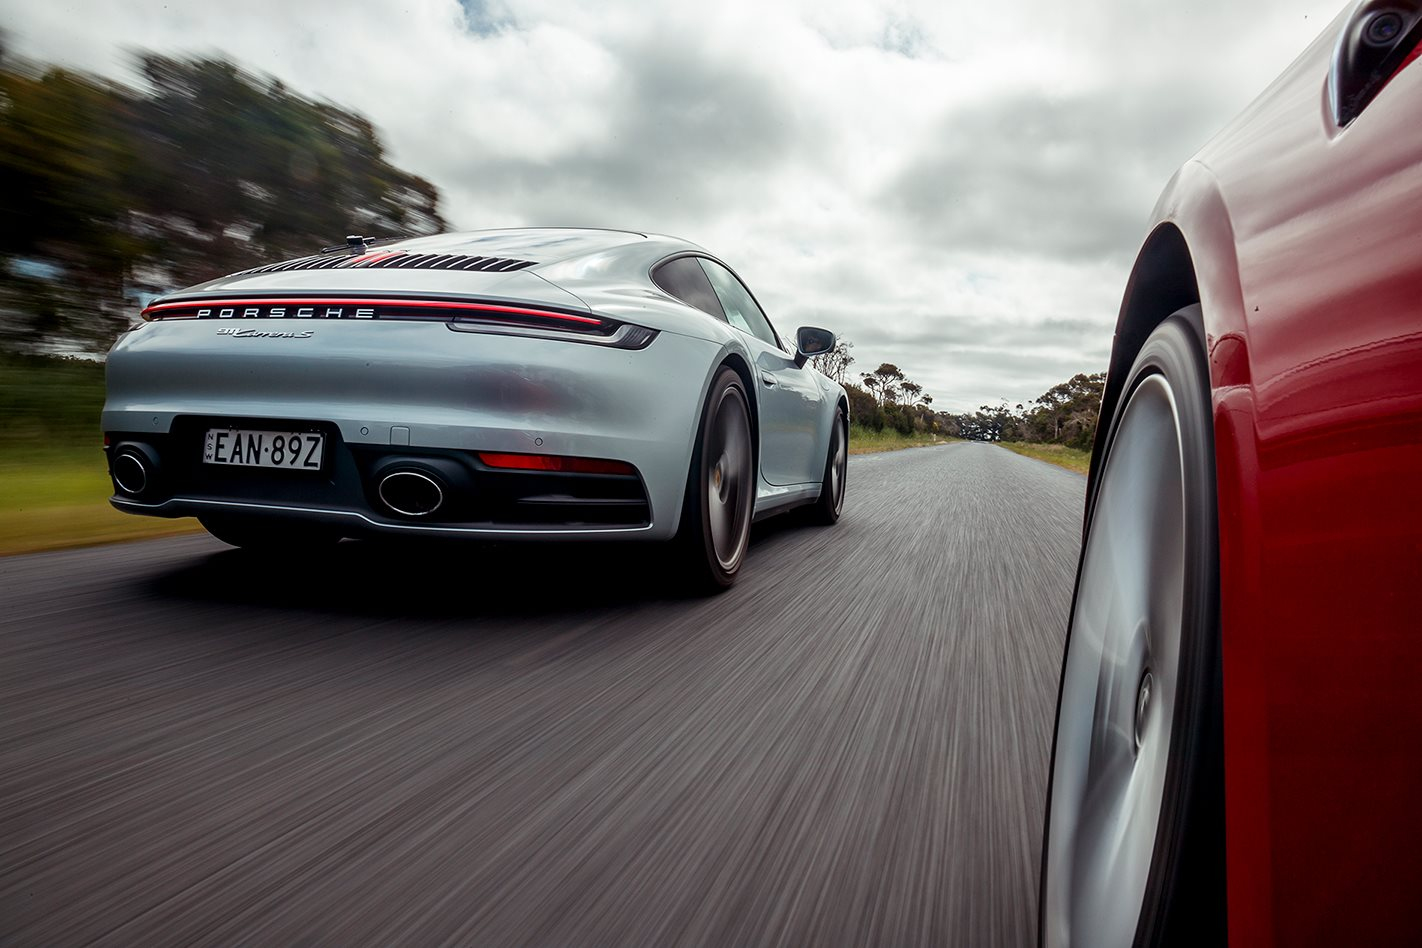 Porsche 992 911: The COTY verdict